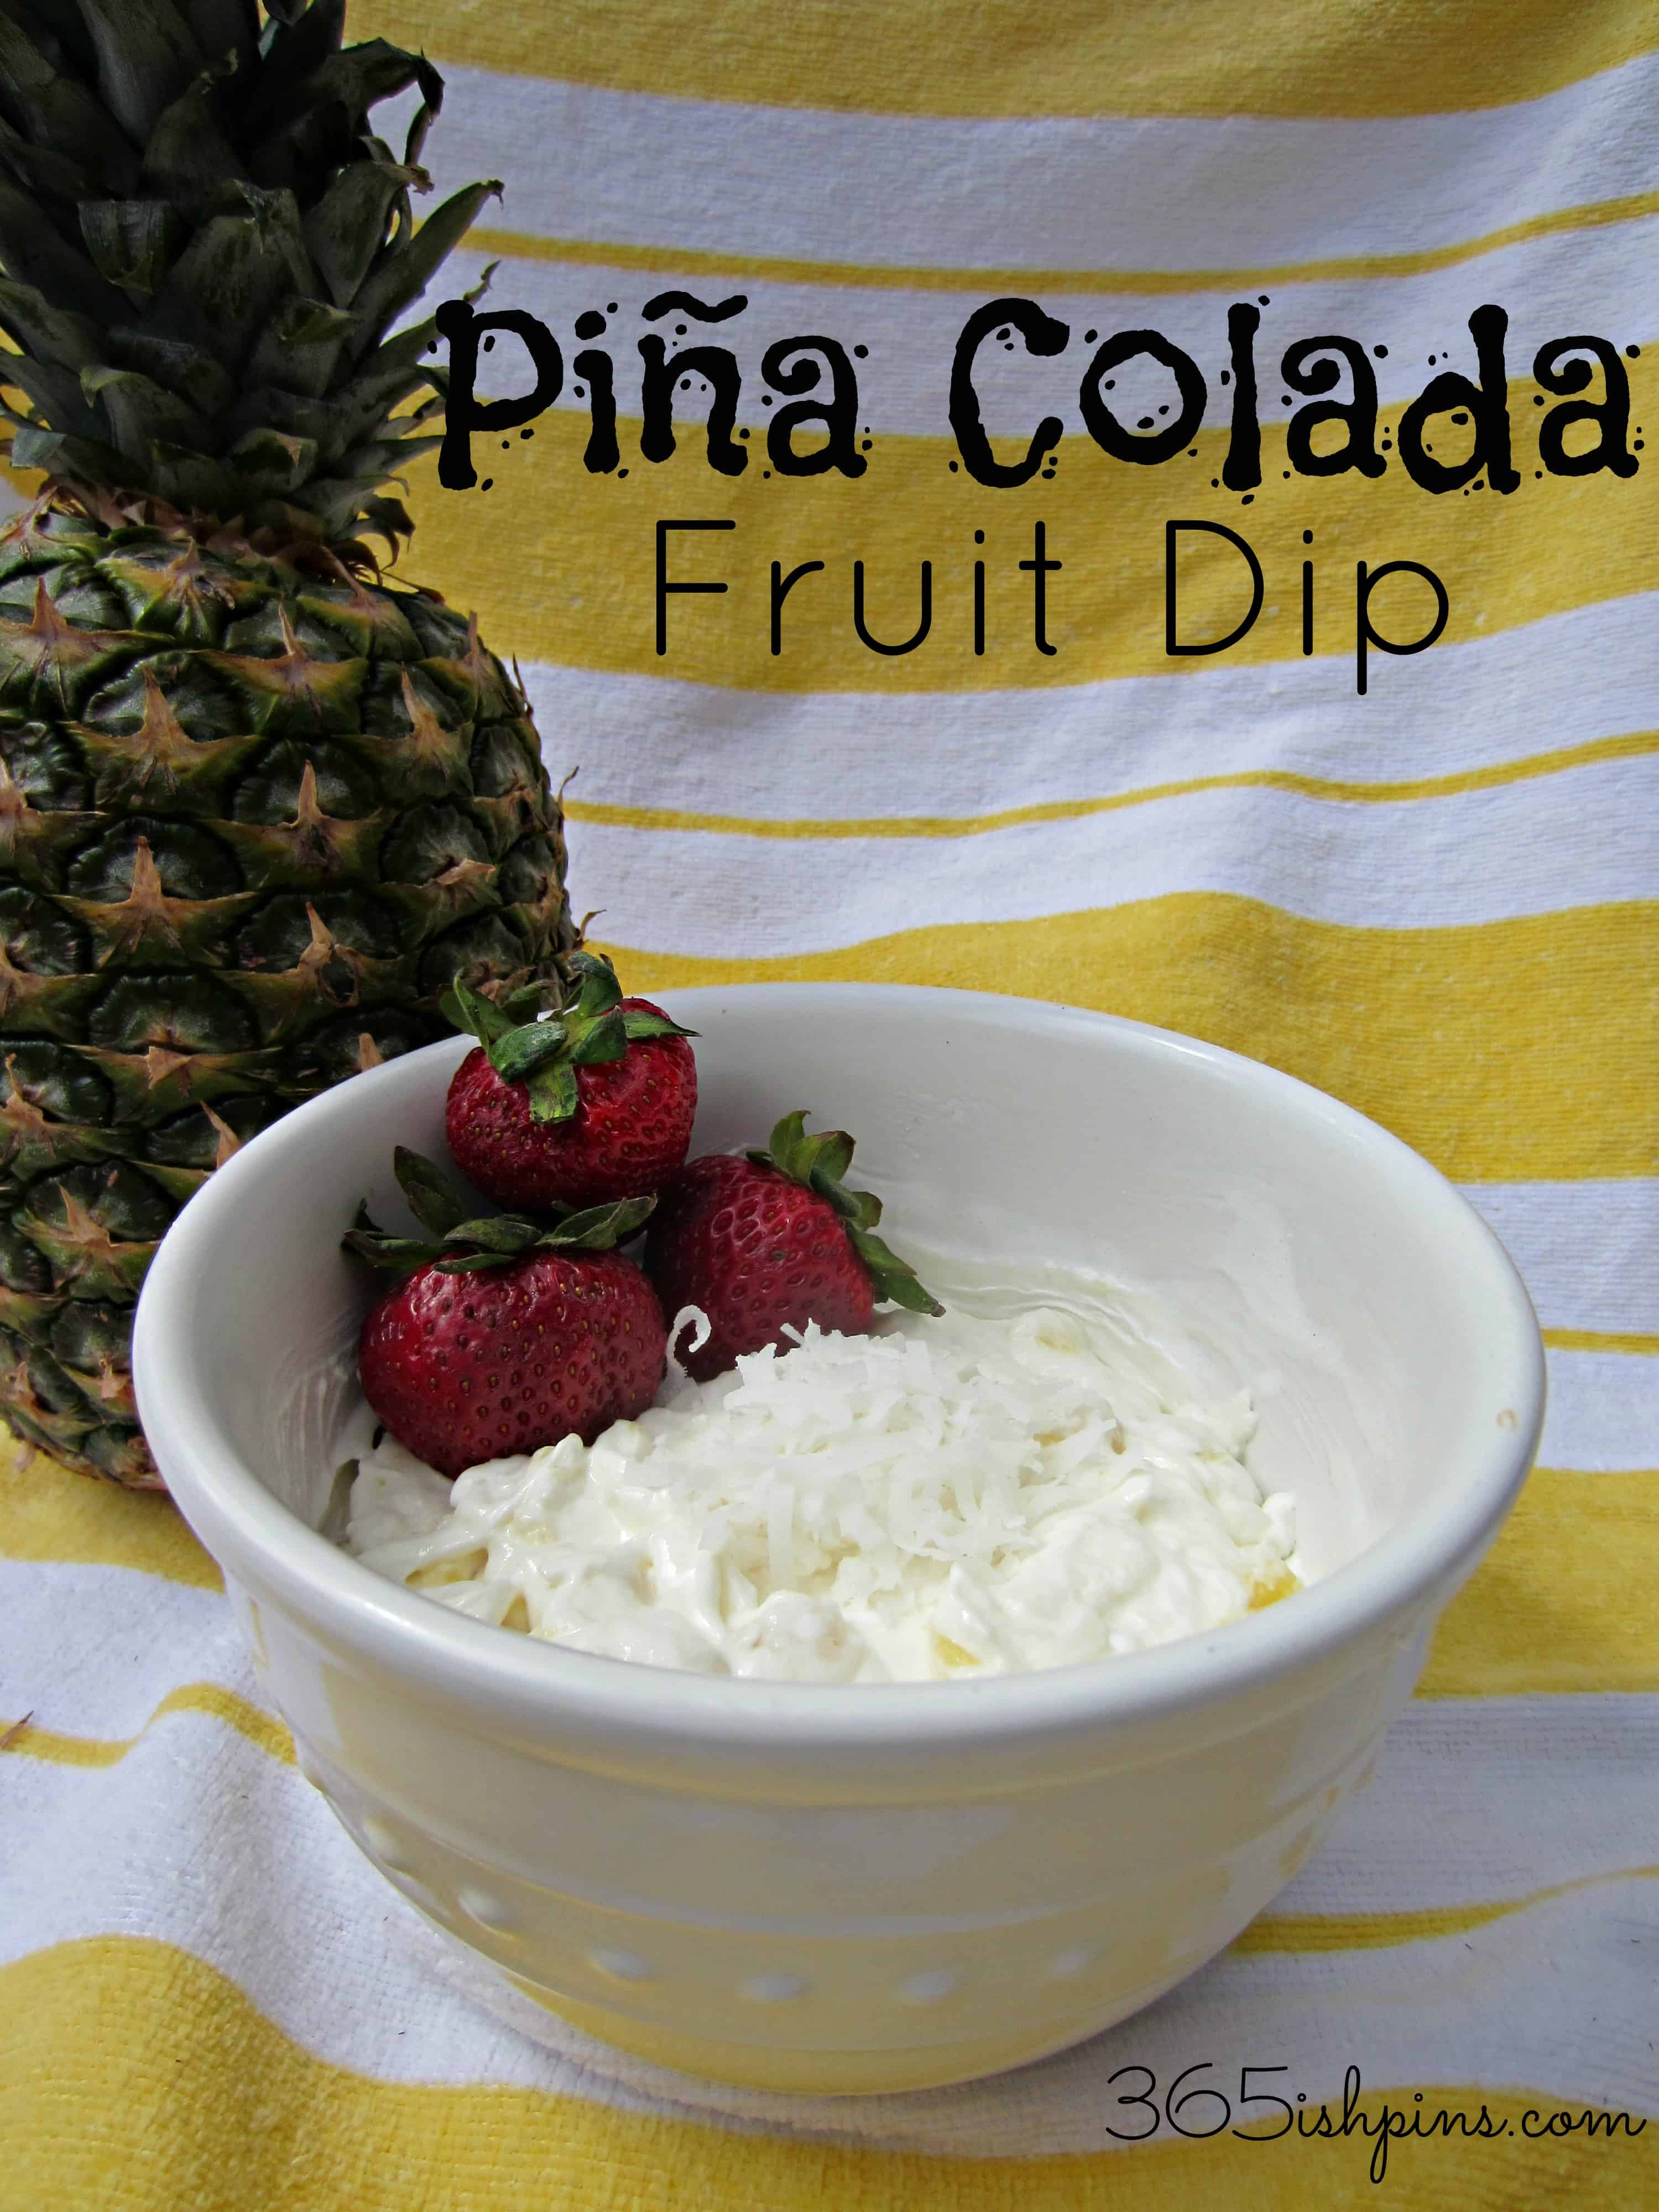 Day 345: Piña Colada Fruit Dip